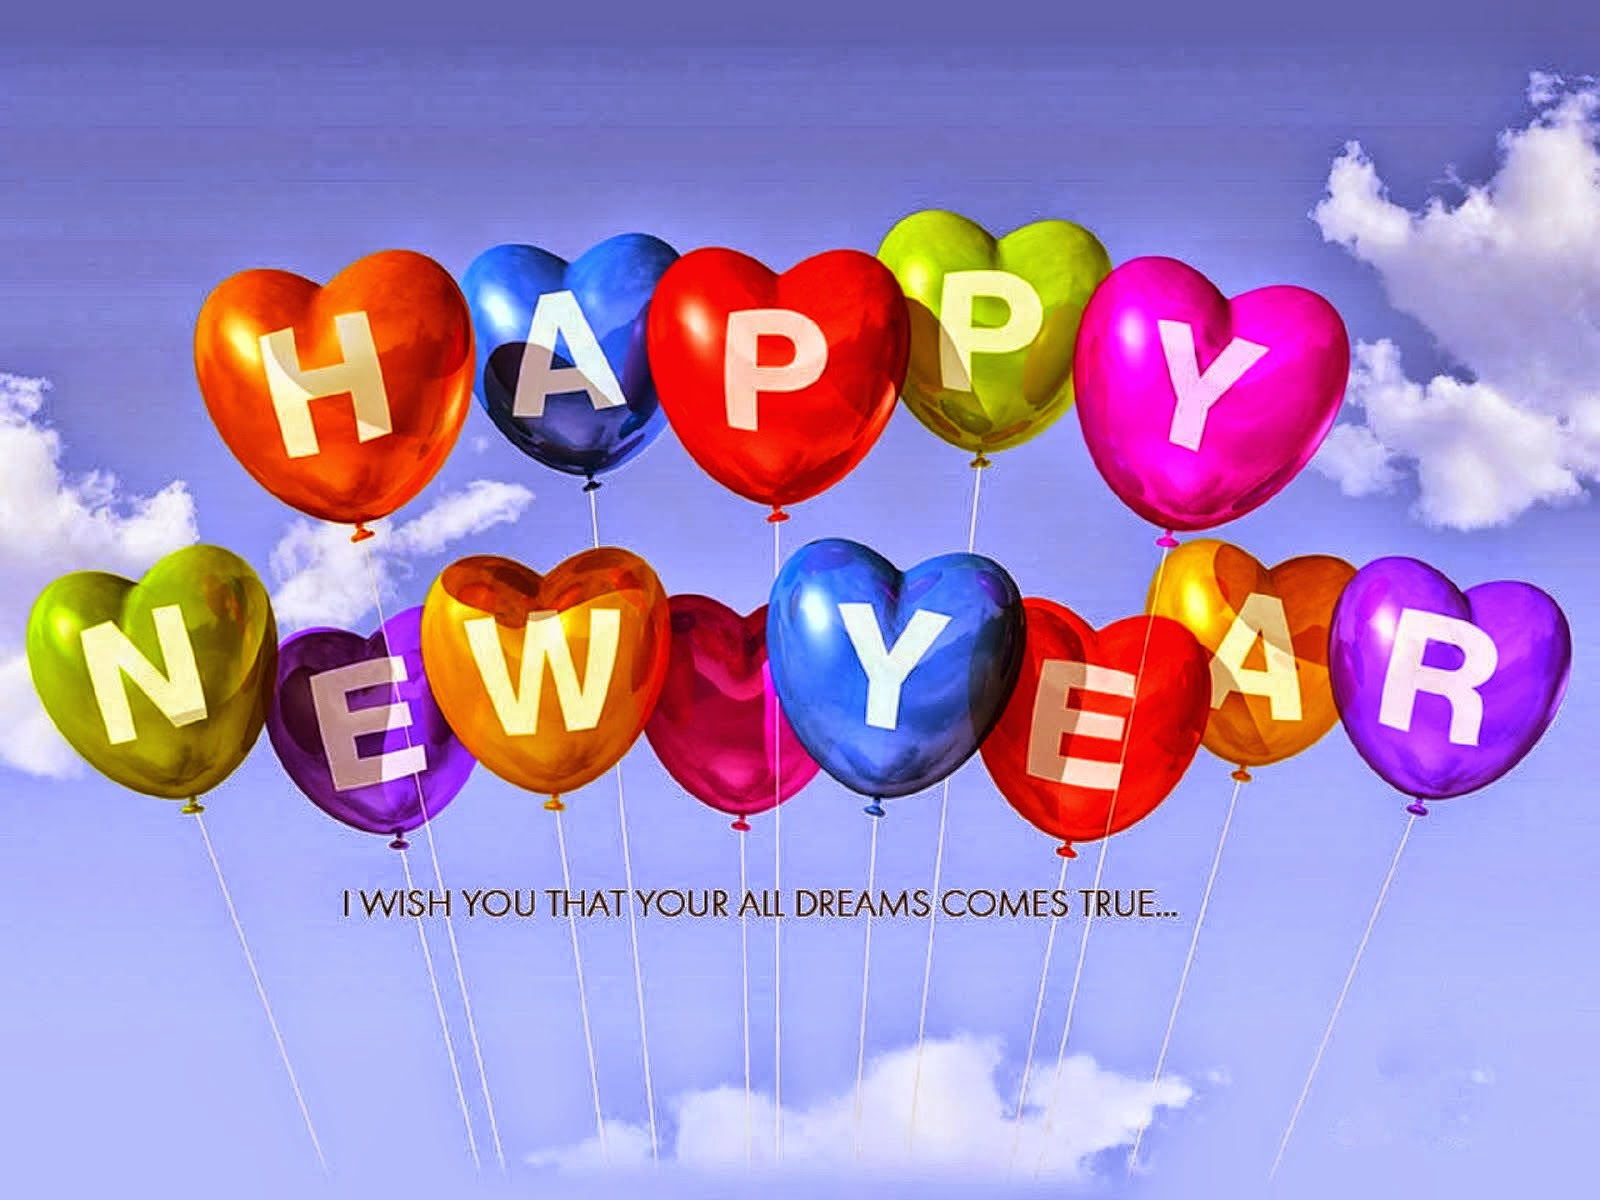 happy new year wishes to all friends wishes quotes cards messages are getting trending balloon love special wallpaper hd 2016 beautiful images are much